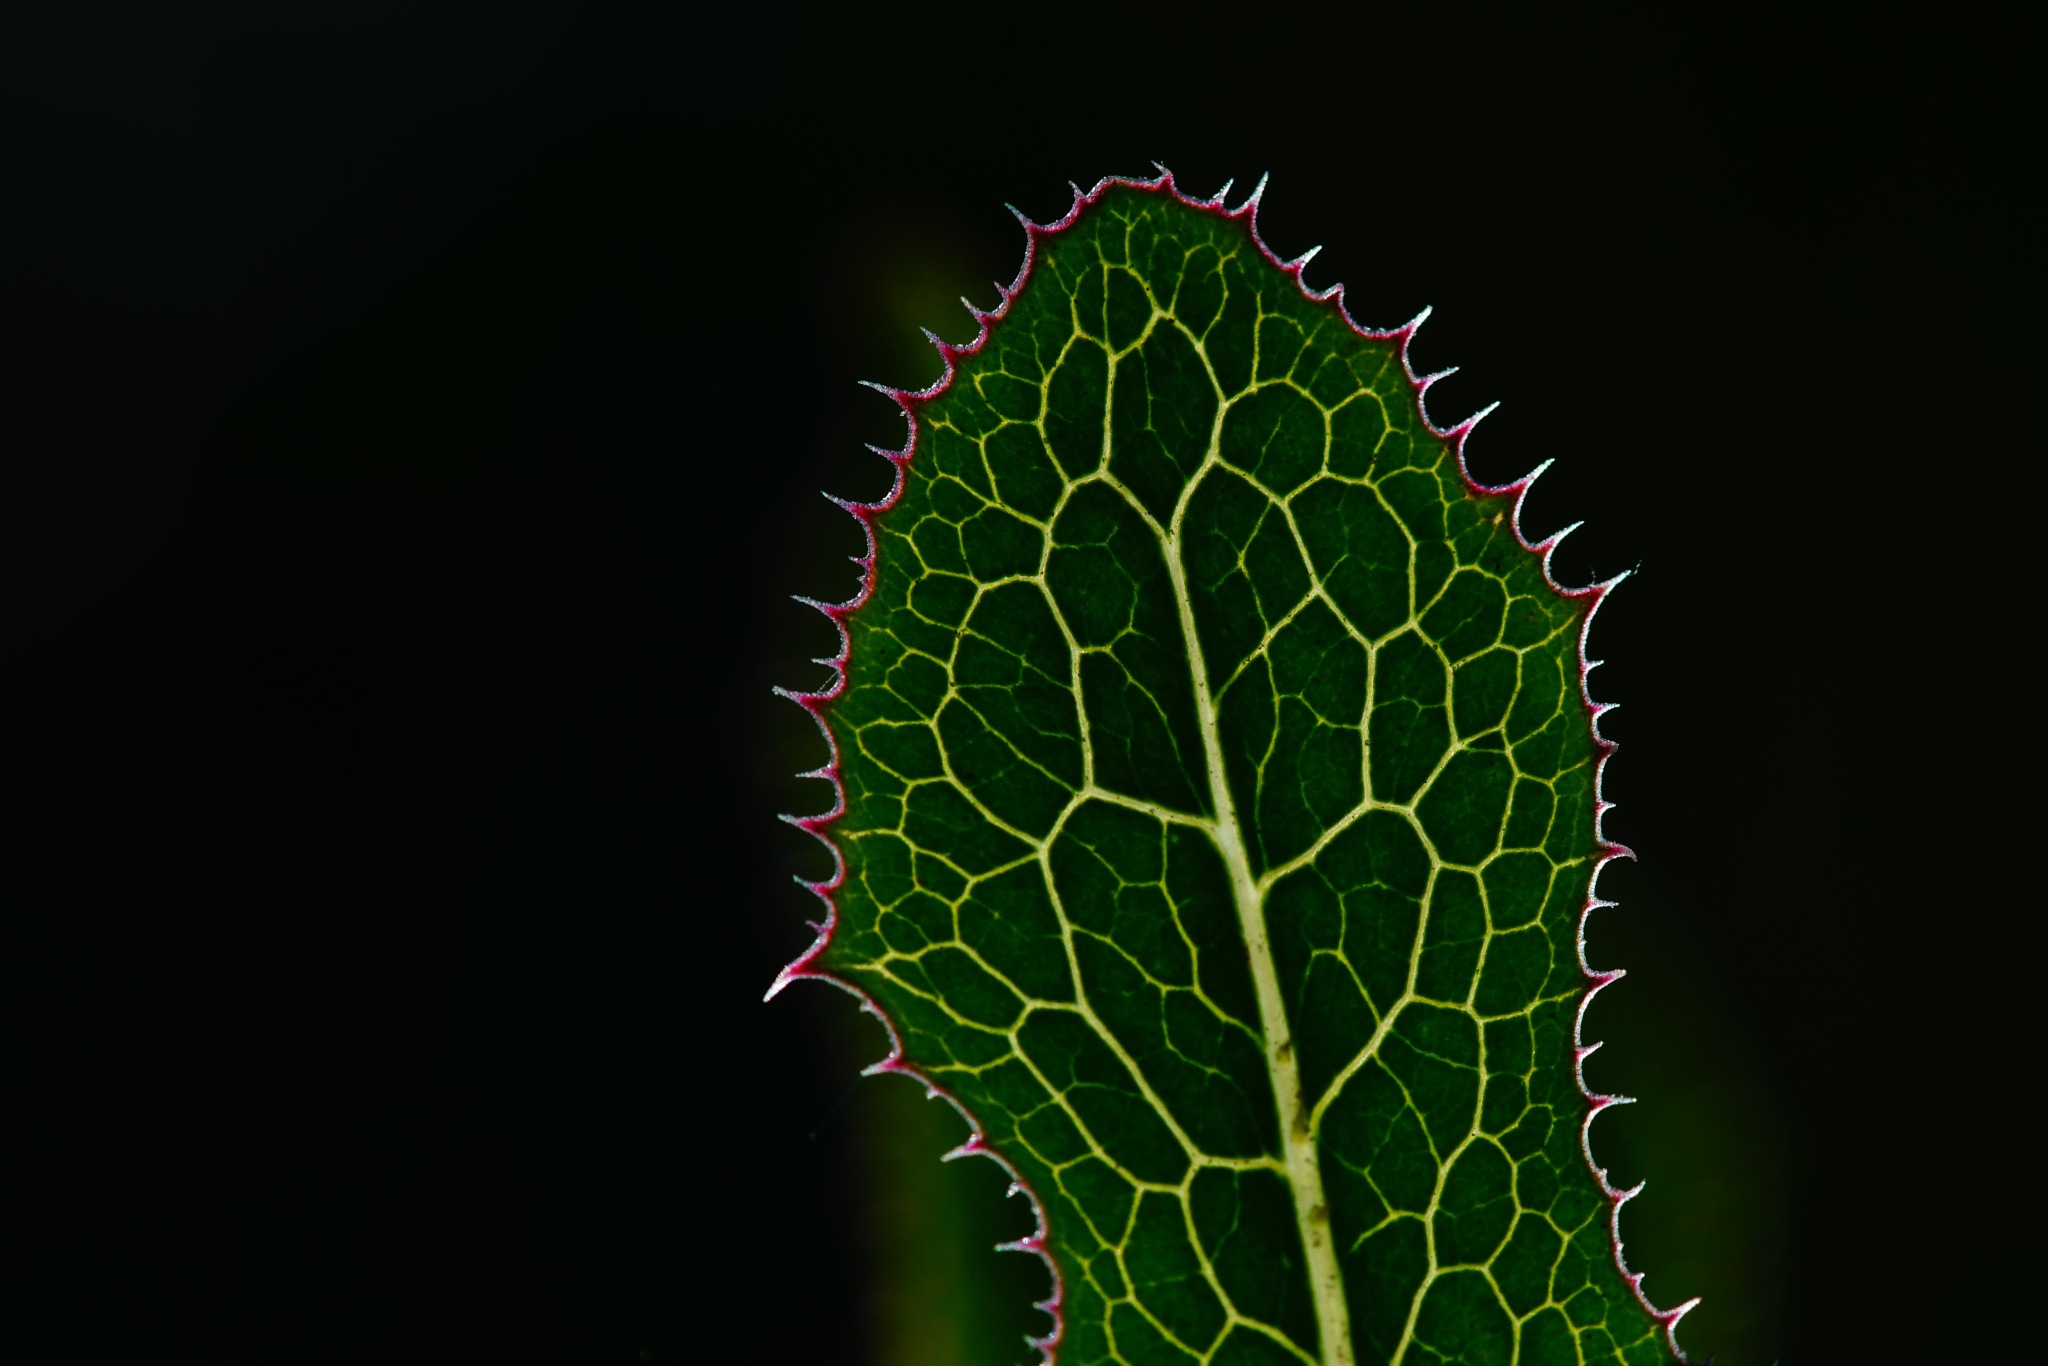 Spiky Leaf by Andreas Karlsson